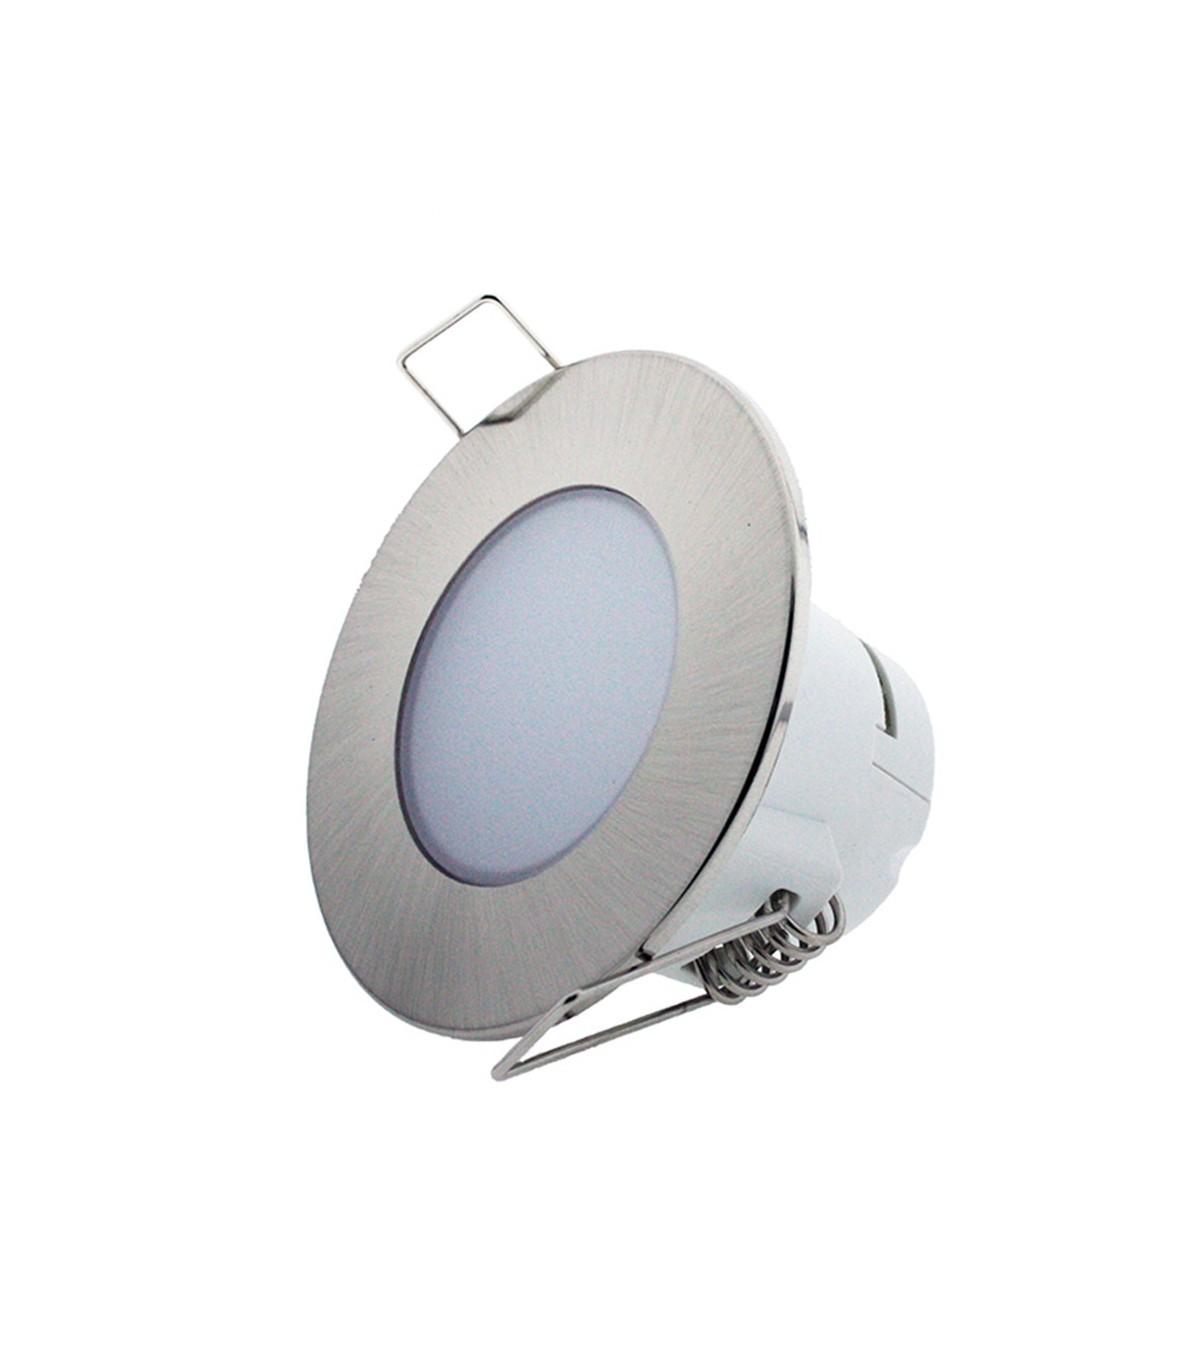 Led Baño Downlight Led 5w Cobcarbon Empotrable Redondo Impermeable Ip54 Para Baño Plata